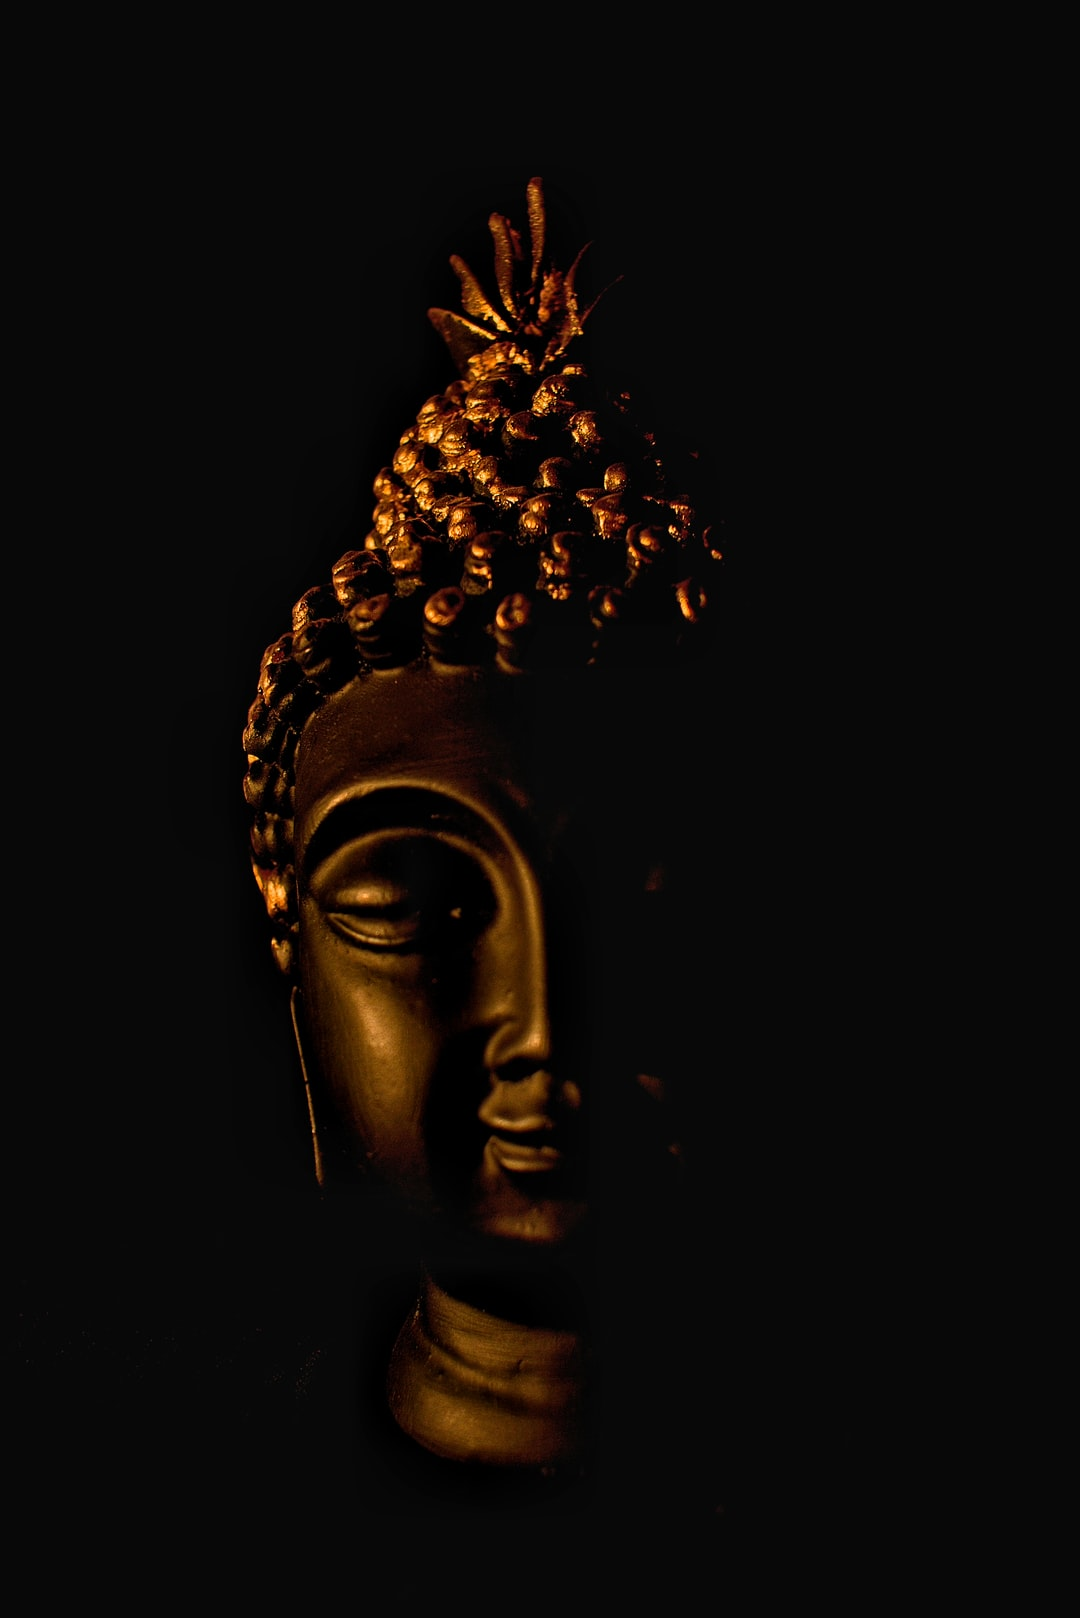 An aesthetic, peaceful and calm pic depicting the character of Buddha.